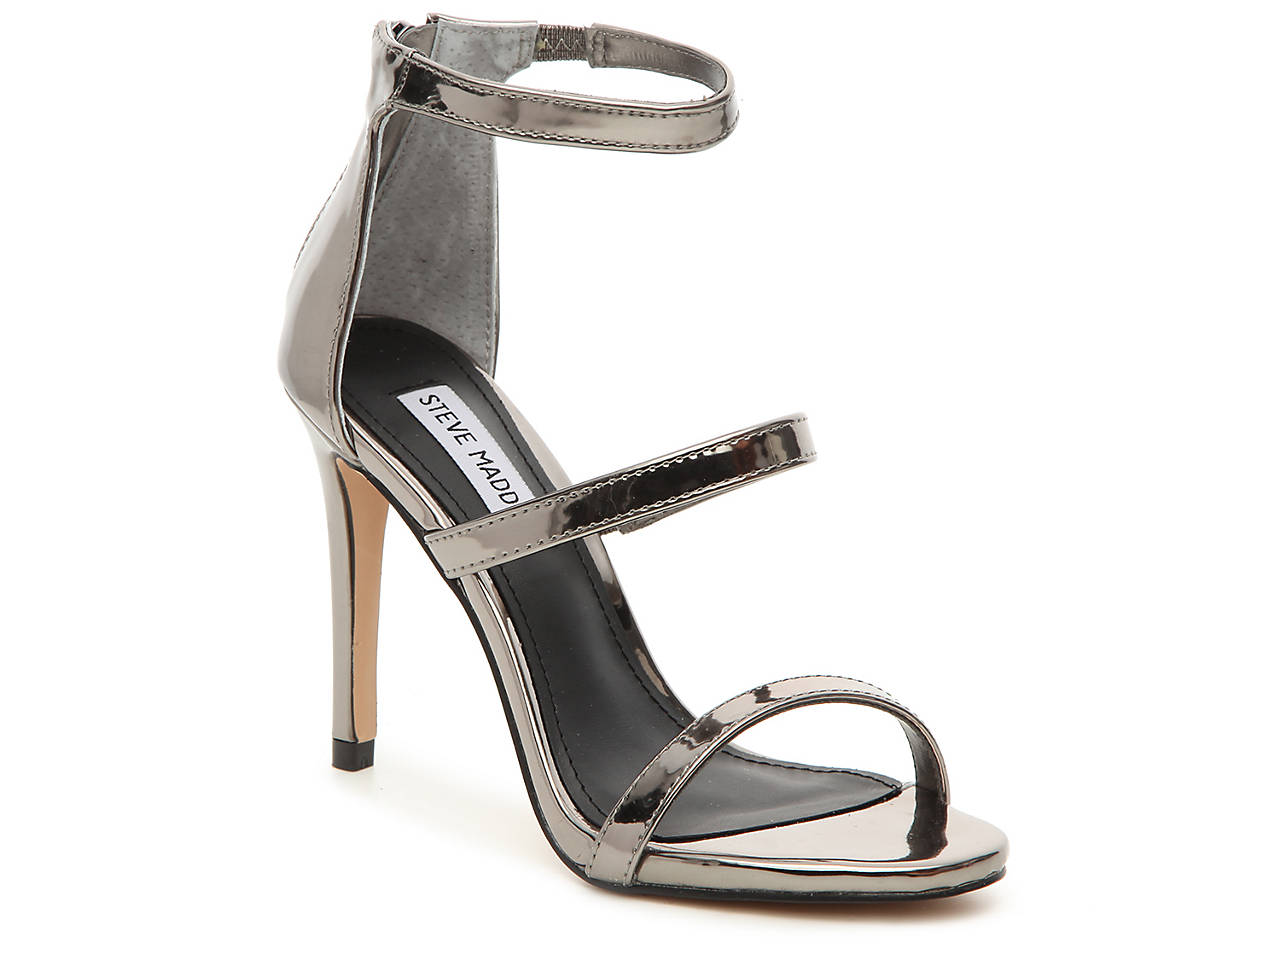 5cfa80f1e8 Steve Madden Feelya Sandal Women's Shoes | DSW